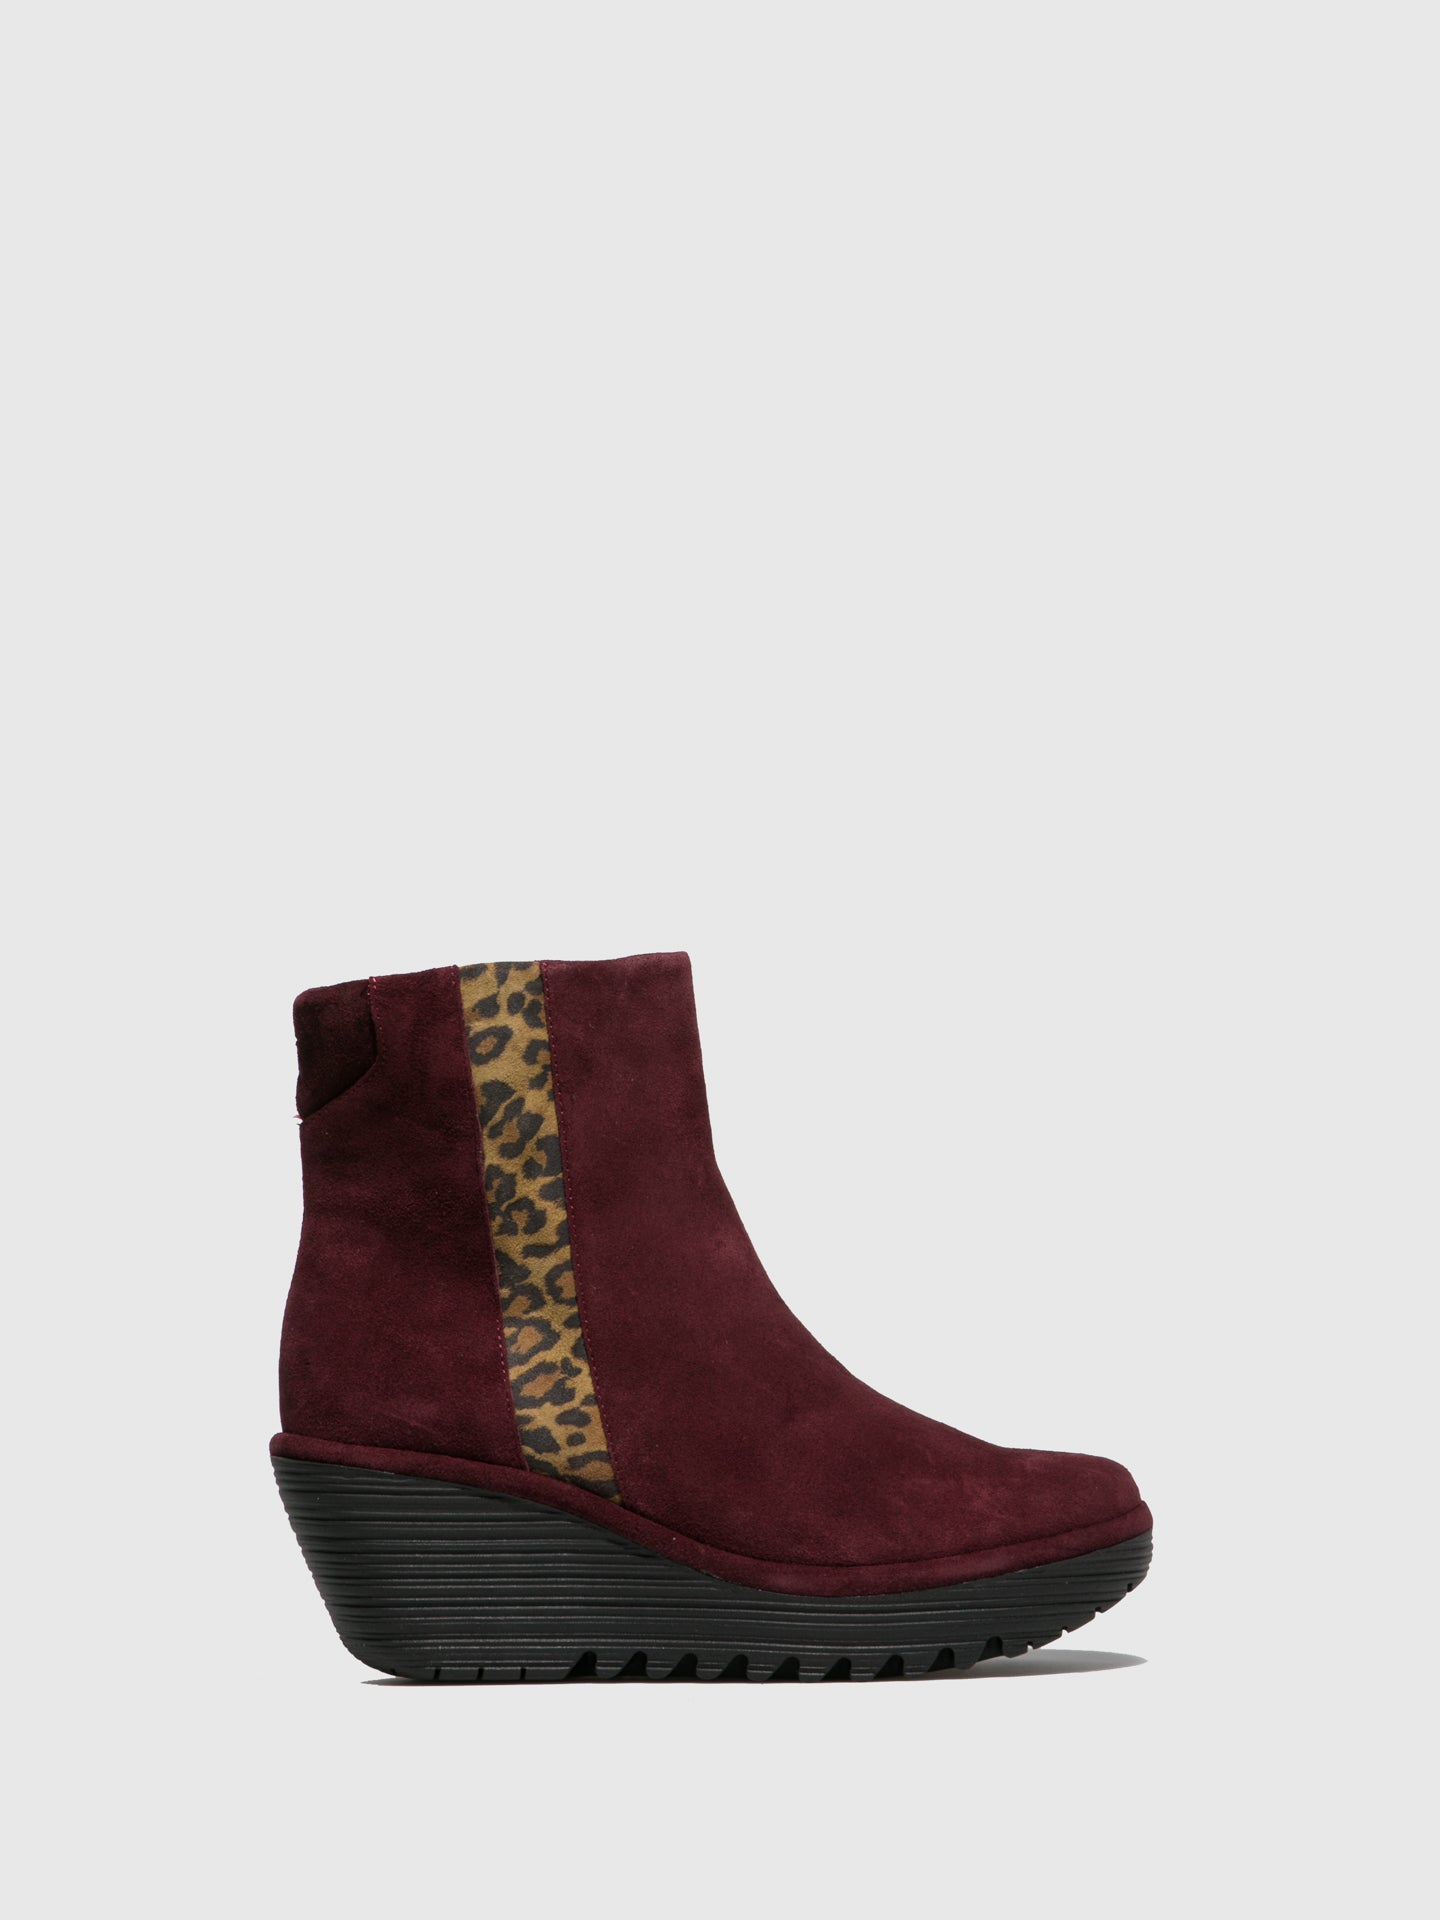 Fly London Zip Up Ankle Boots YULU252FLY OILSUEDE/CHEETAH WINE/TAN